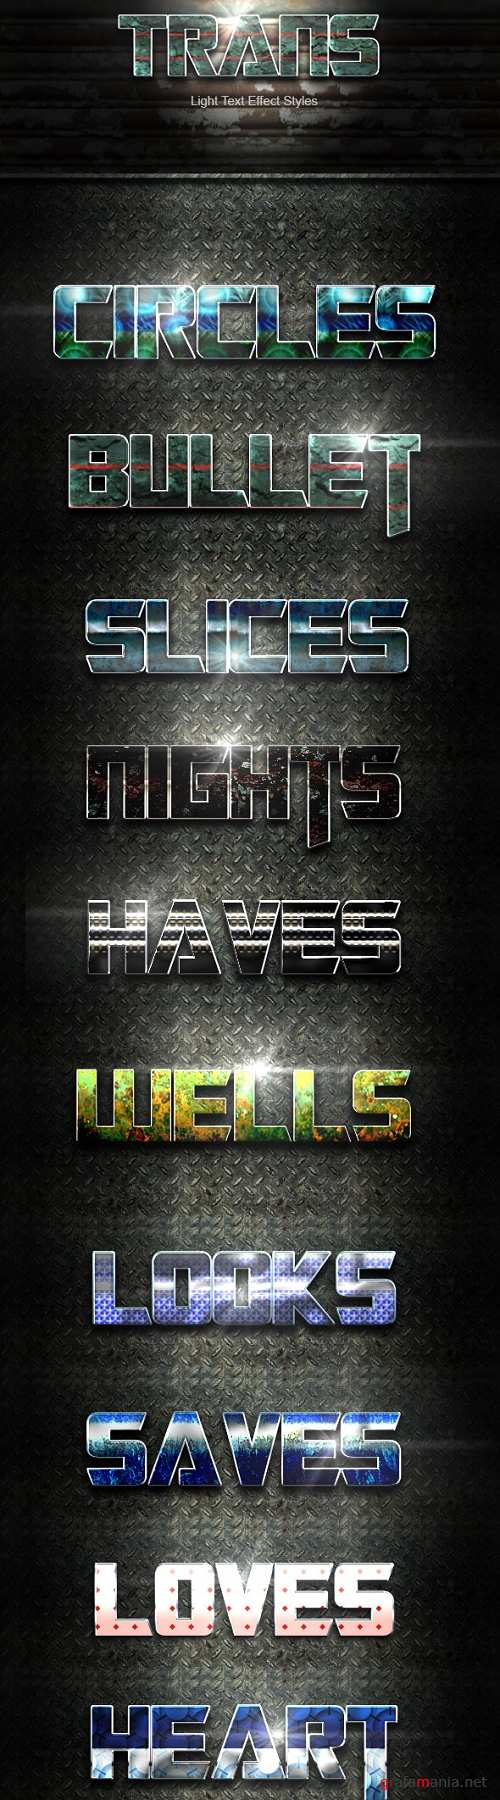 Trans Text Effect V31 19849910